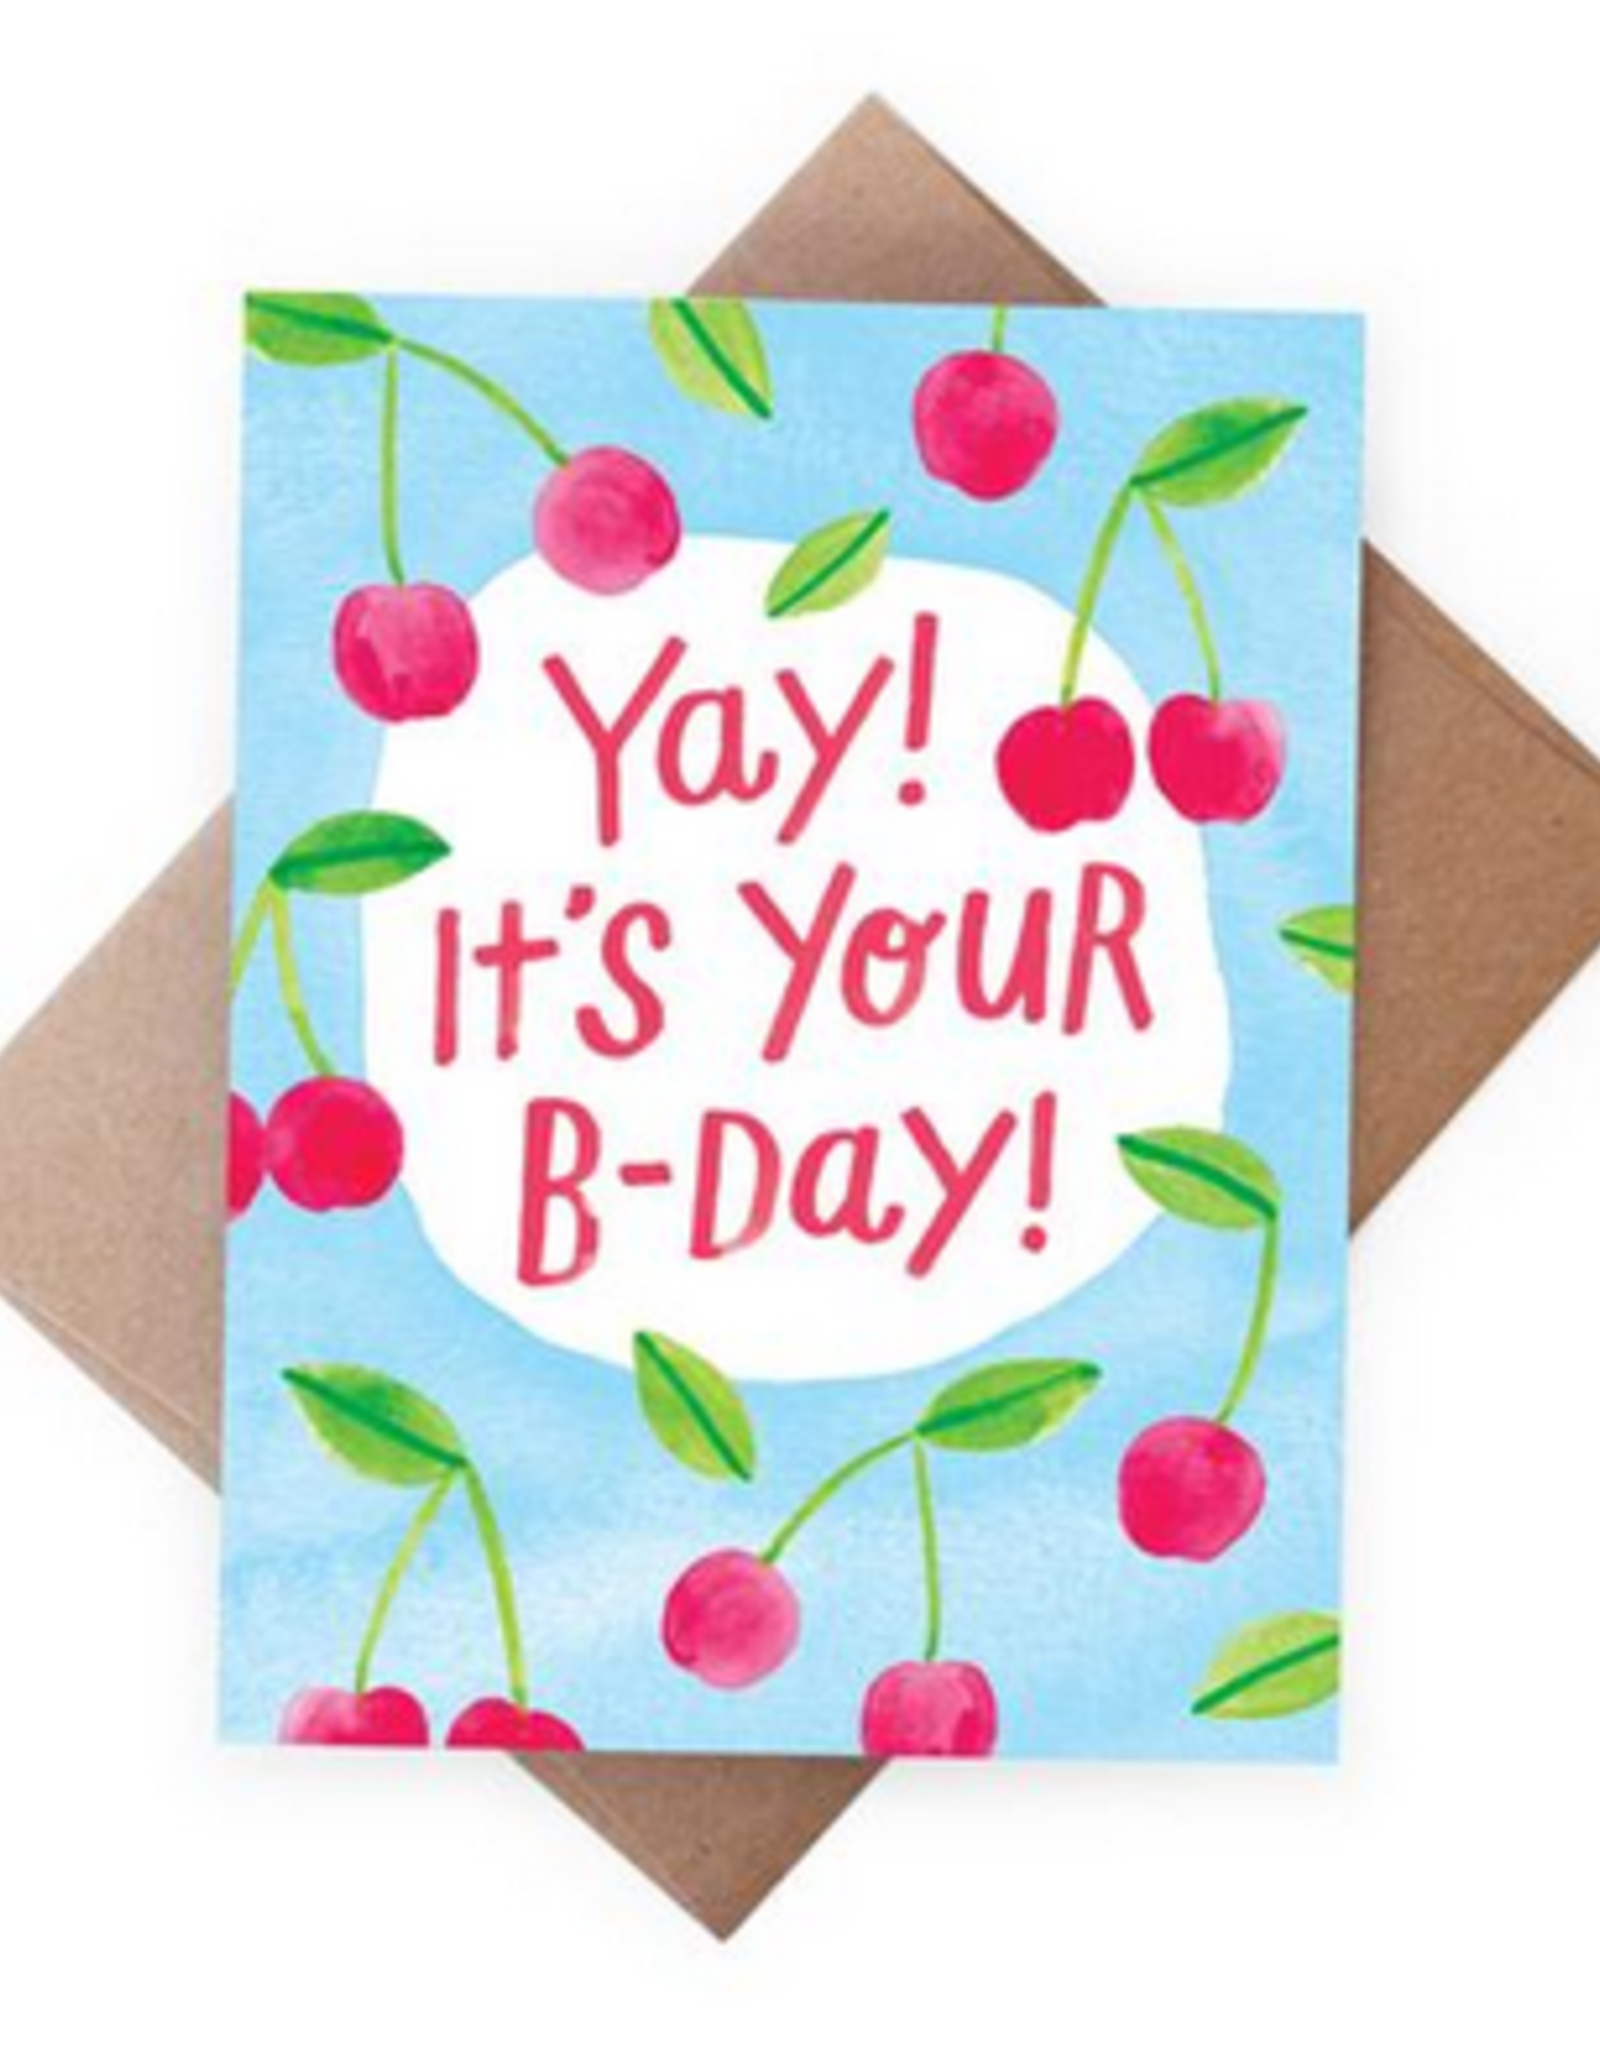 Yay! It's Your B-Day! (cherries) Greeting Card